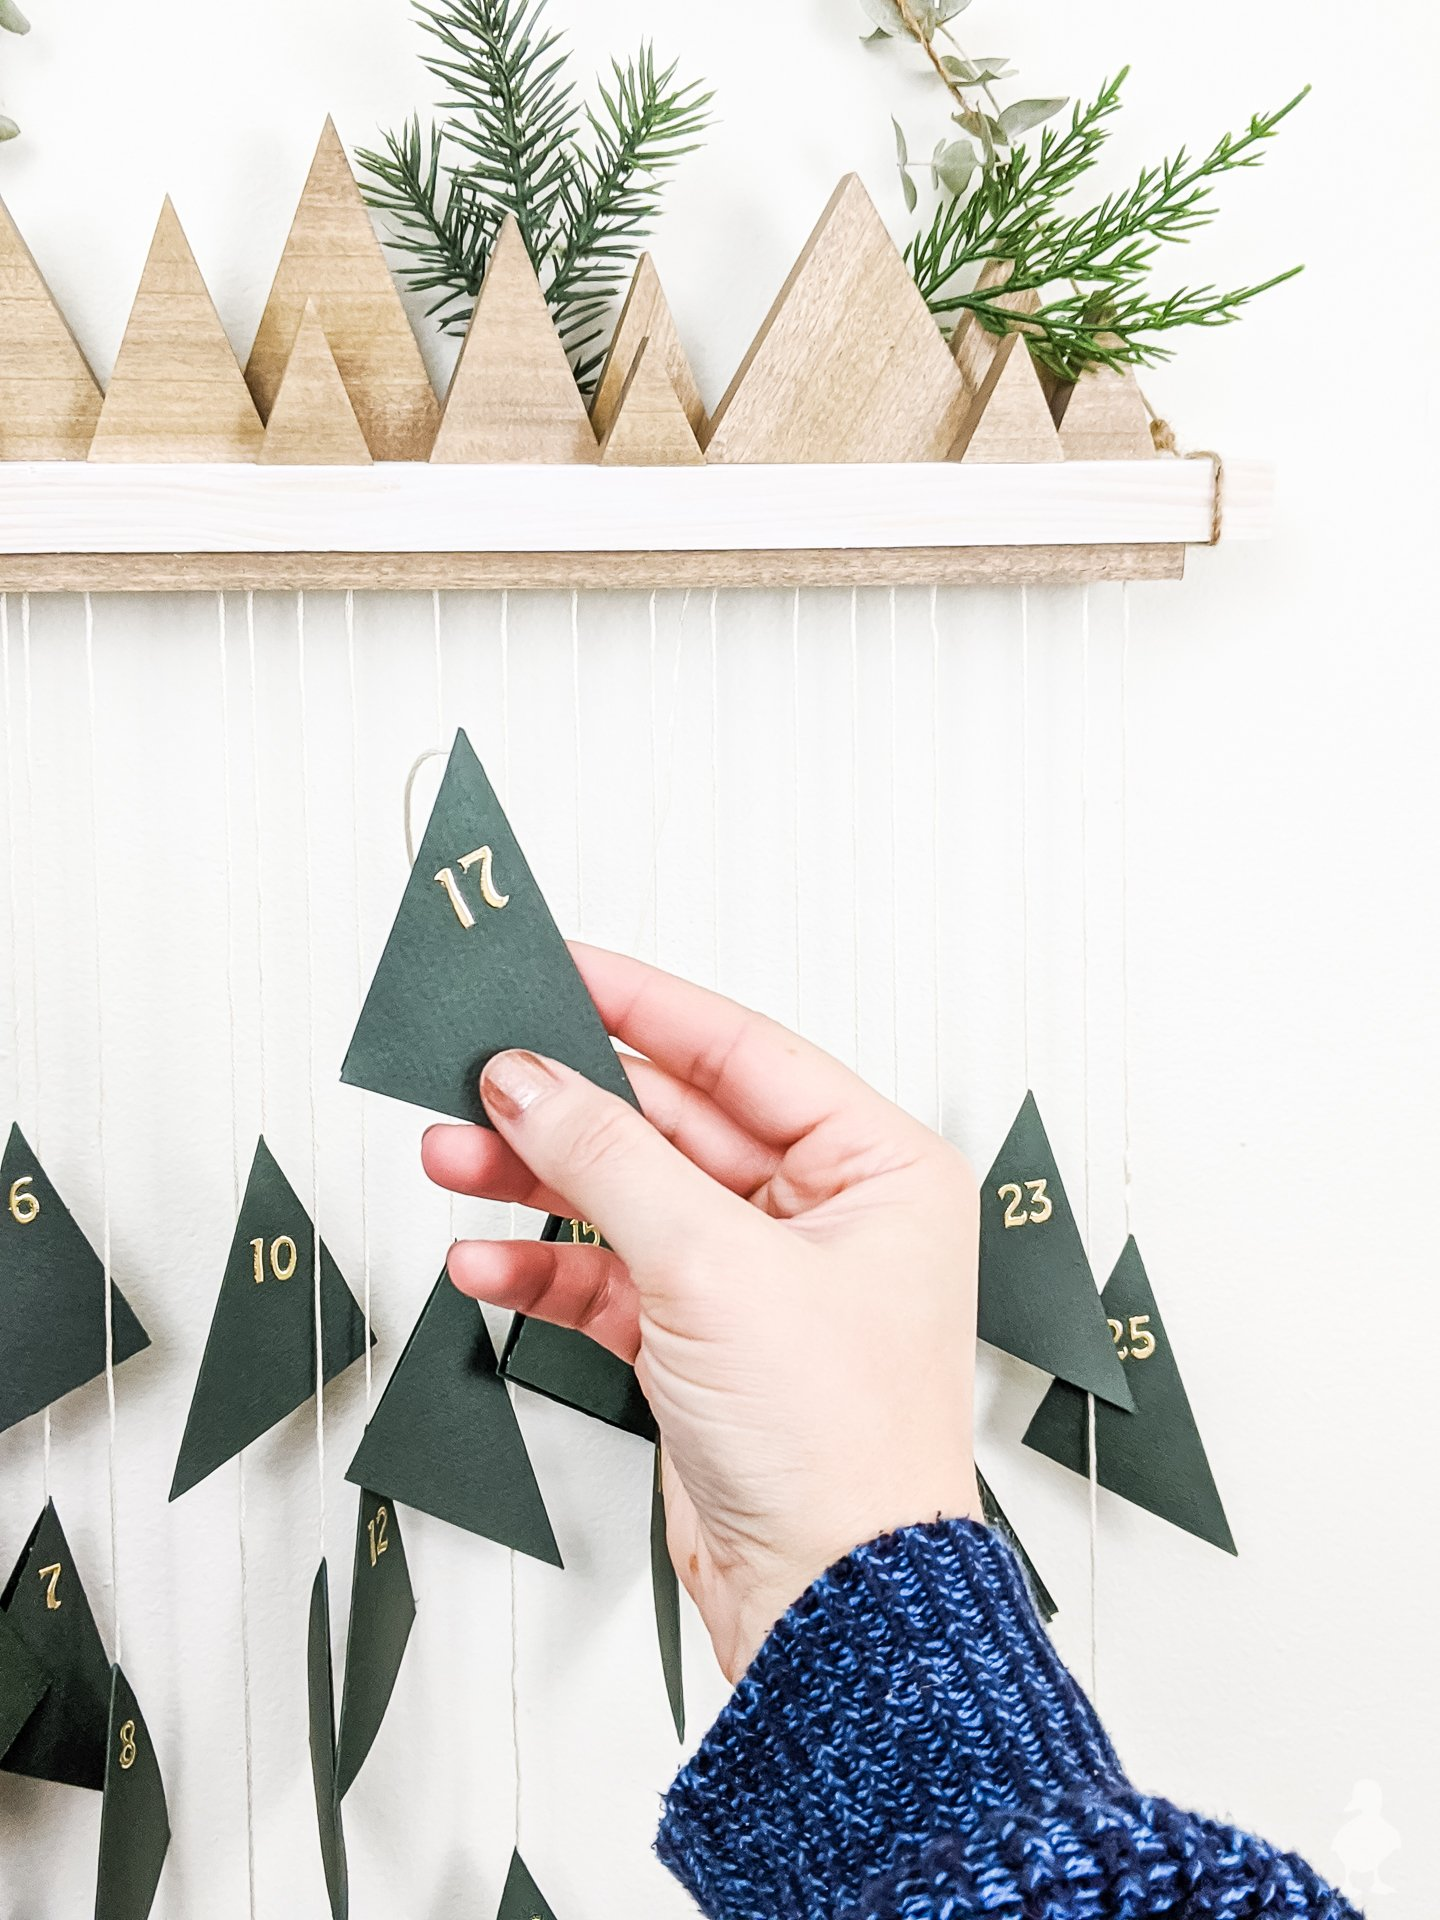 number each triangle of paper with stickers